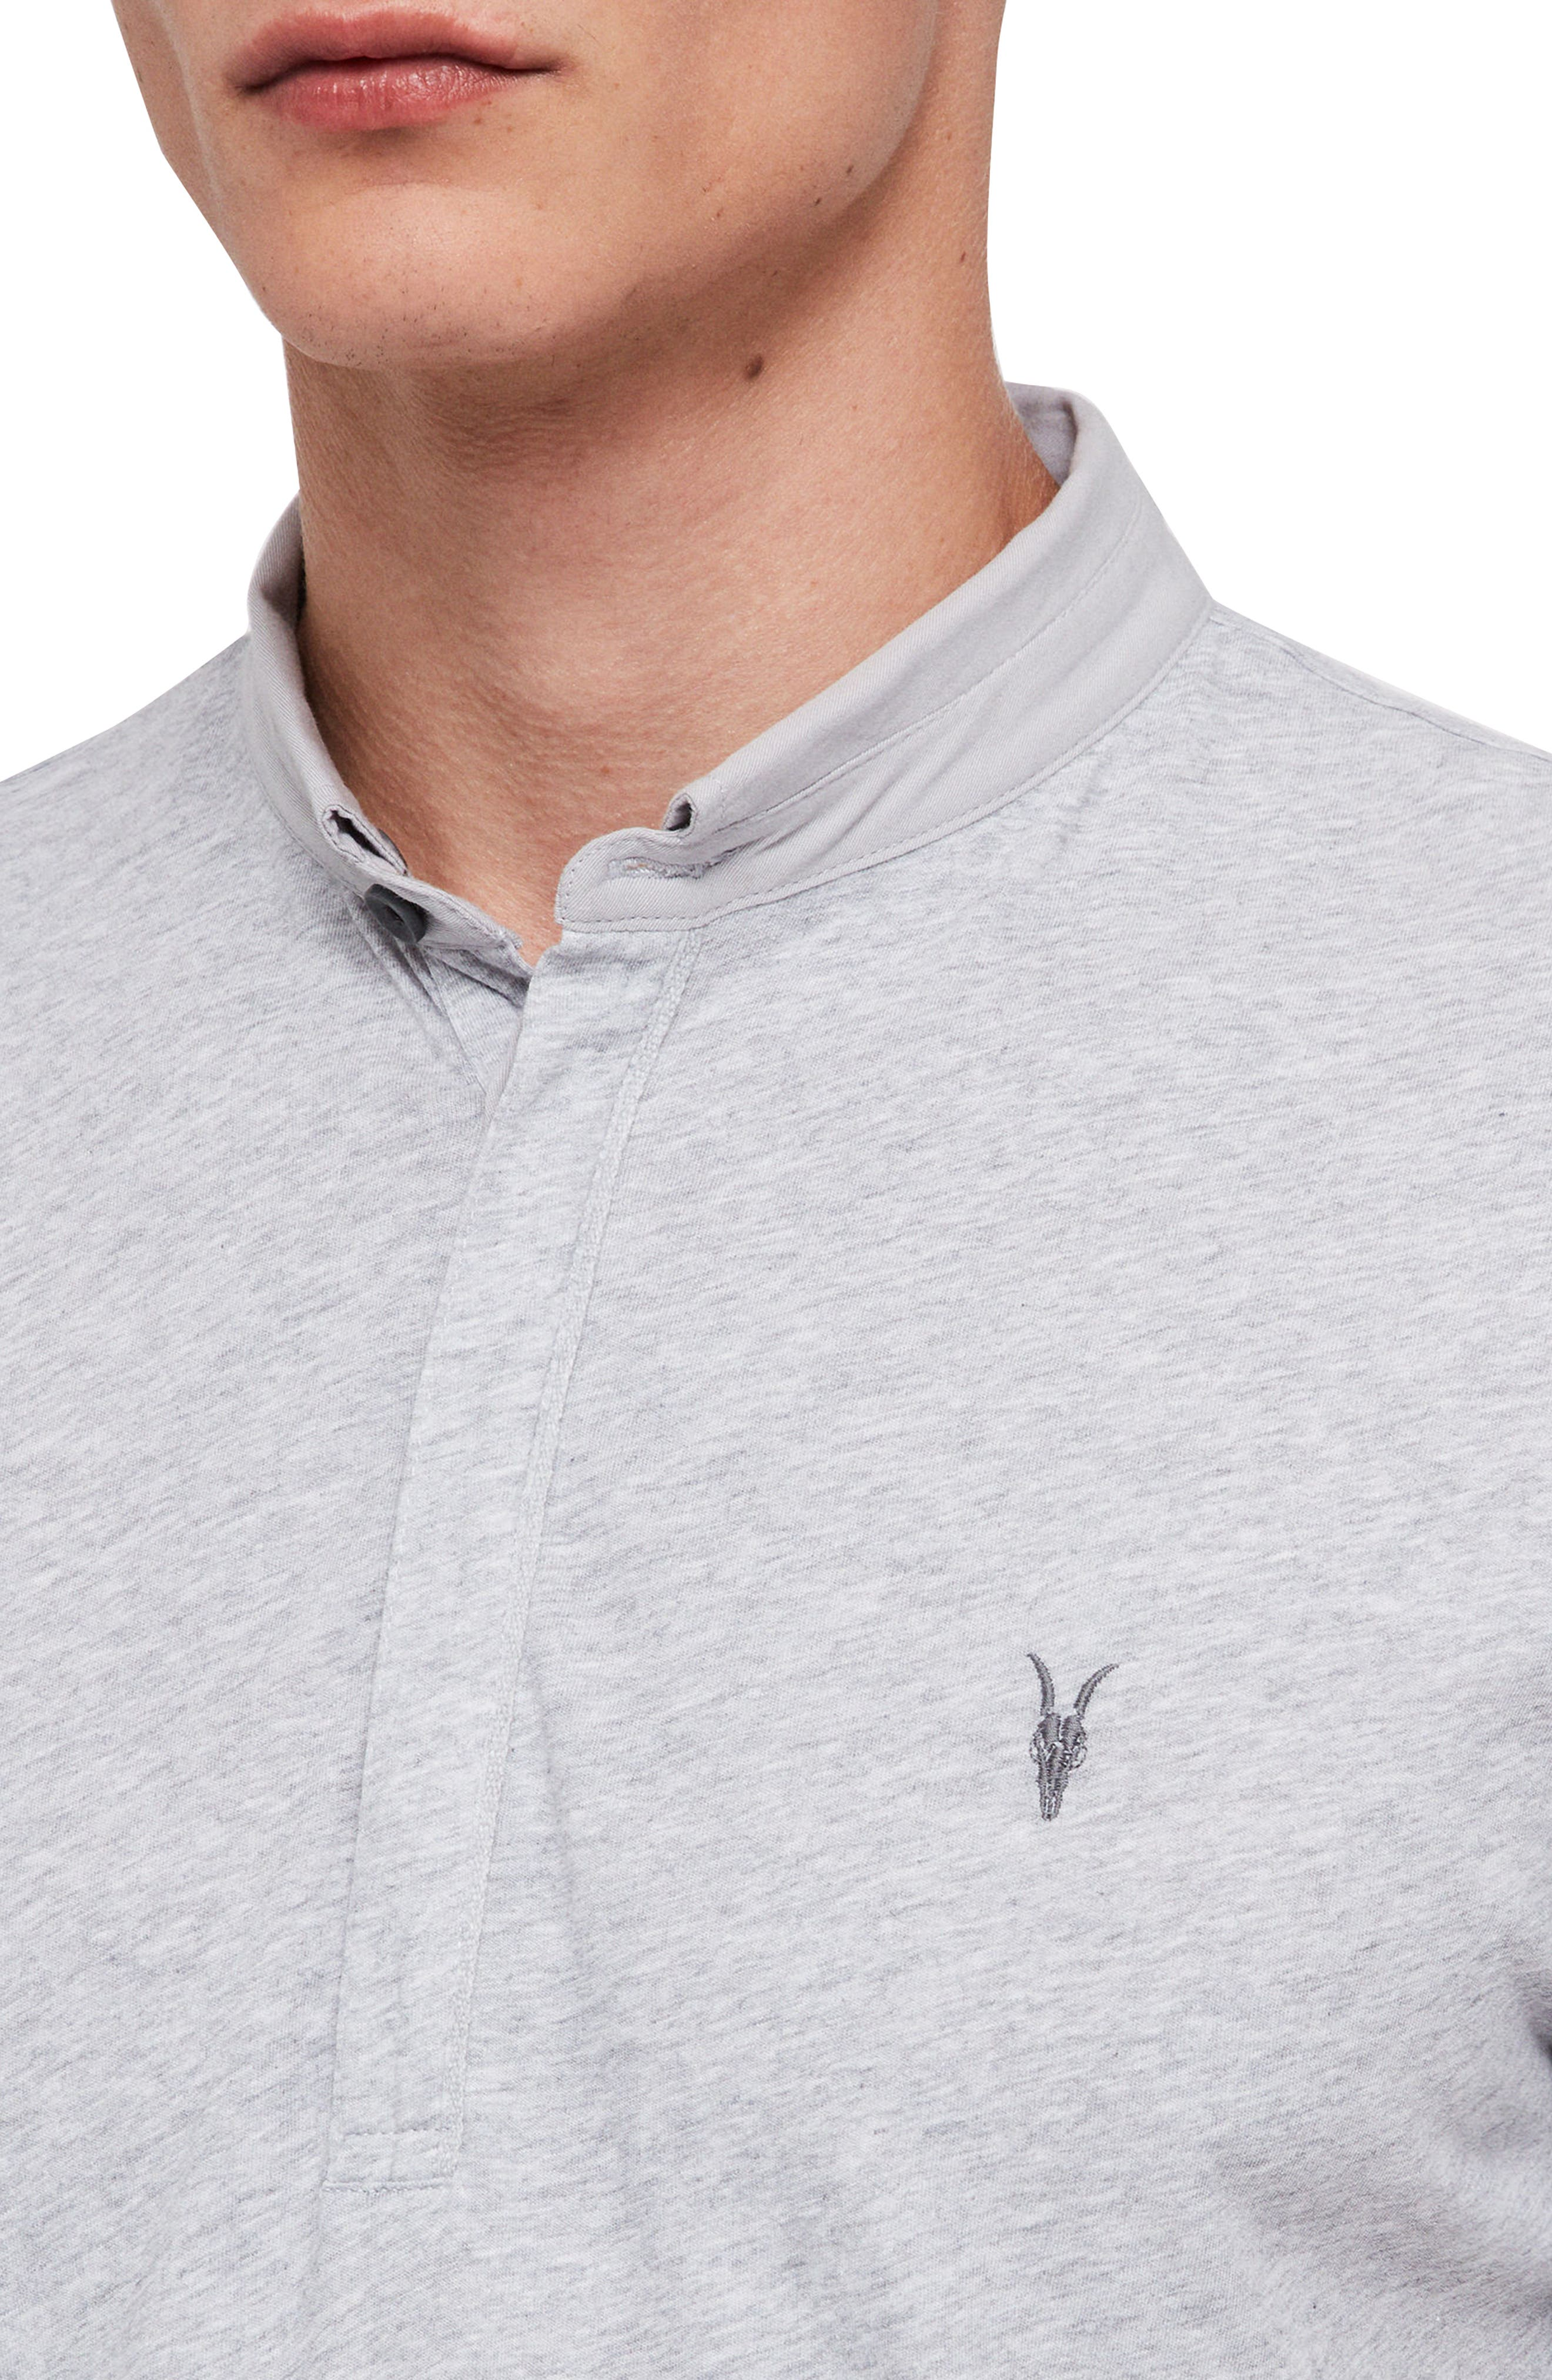 Grail Slim Fit Polo,                             Alternate thumbnail 3, color,                             GREY MARL